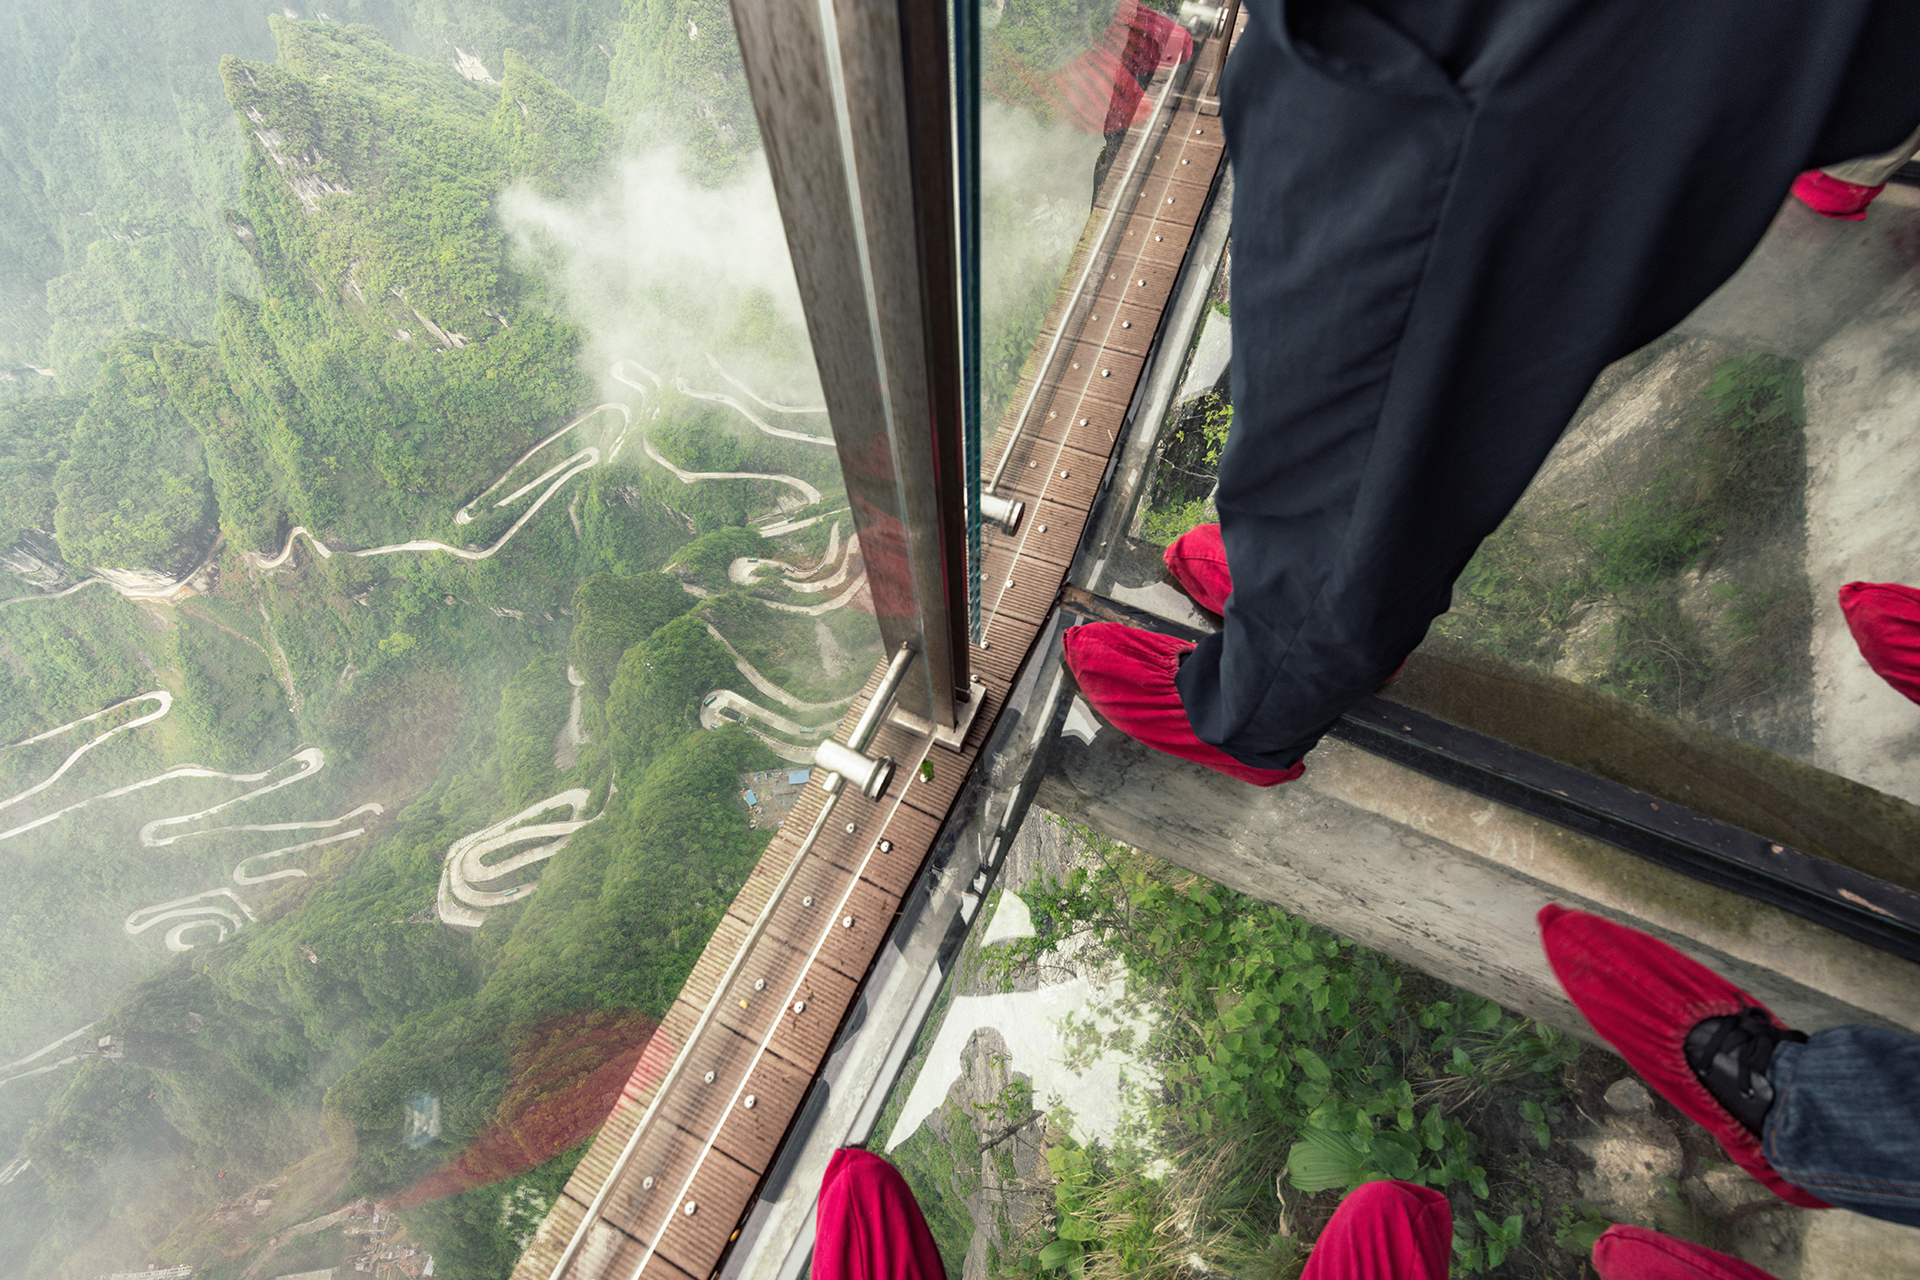 Have you ever stepped out onto a glass walkway over a deep canyon?